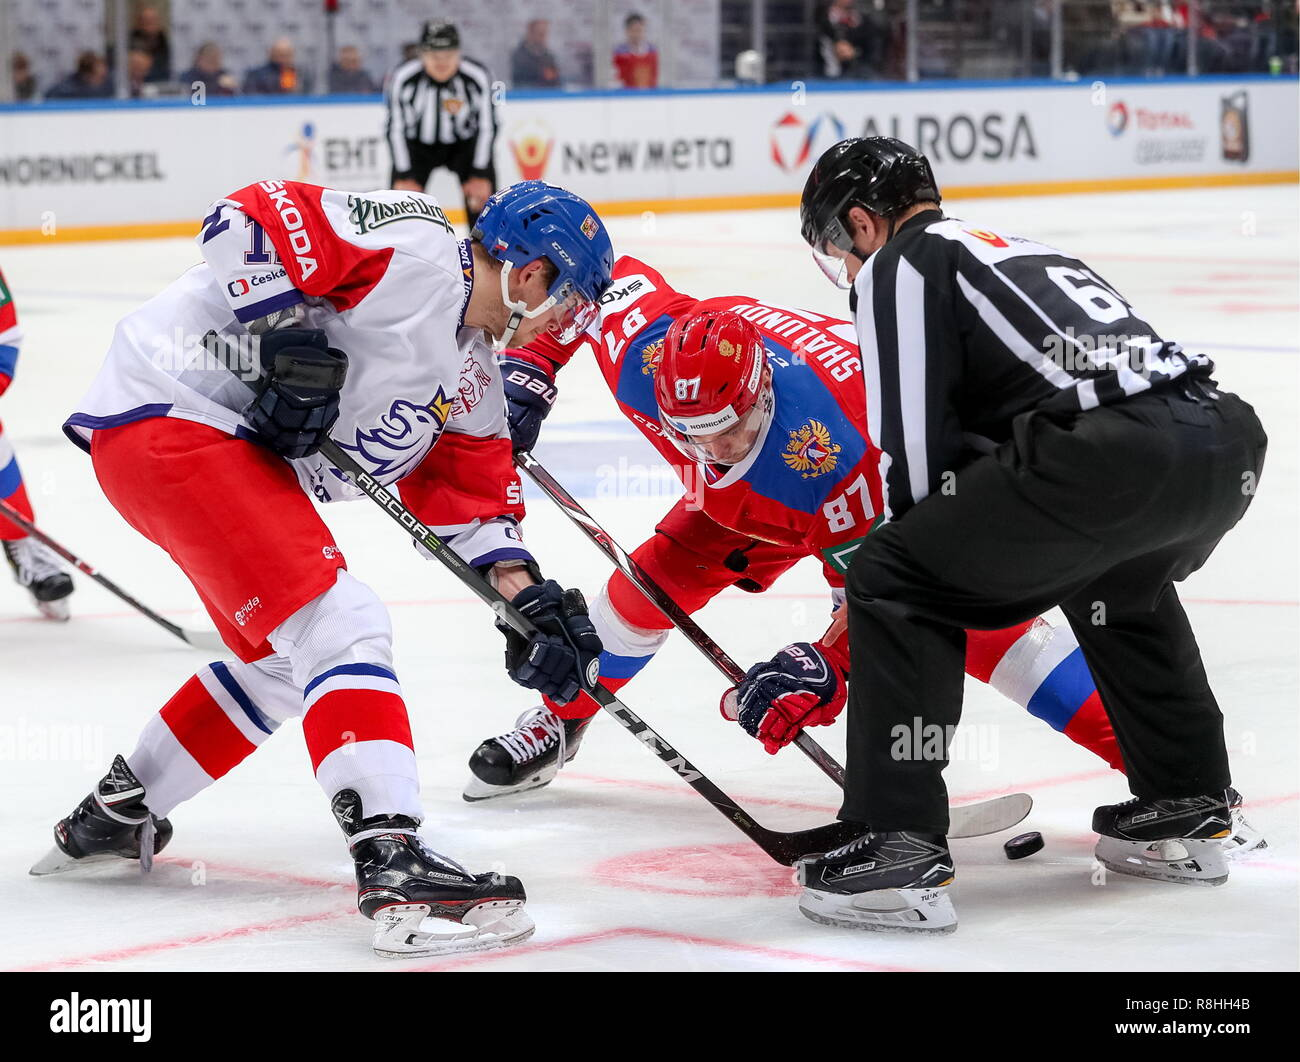 Moscow, Russia. 15th Dec, 2018. MOSCOW, RUSSIA - DECEMBER 15, 2018: The Czech Republic's Andrej Nestrasil (L) and Russia's Maxim Shalunov doing a faceoff in their 2018-19 Euro Hockey Tour Channel One Cup ice hockey match at CSKA Arena. Mikhail Tereshchenko/TASS Credit: ITAR-TASS News Agency/Alamy Live News - Stock Image